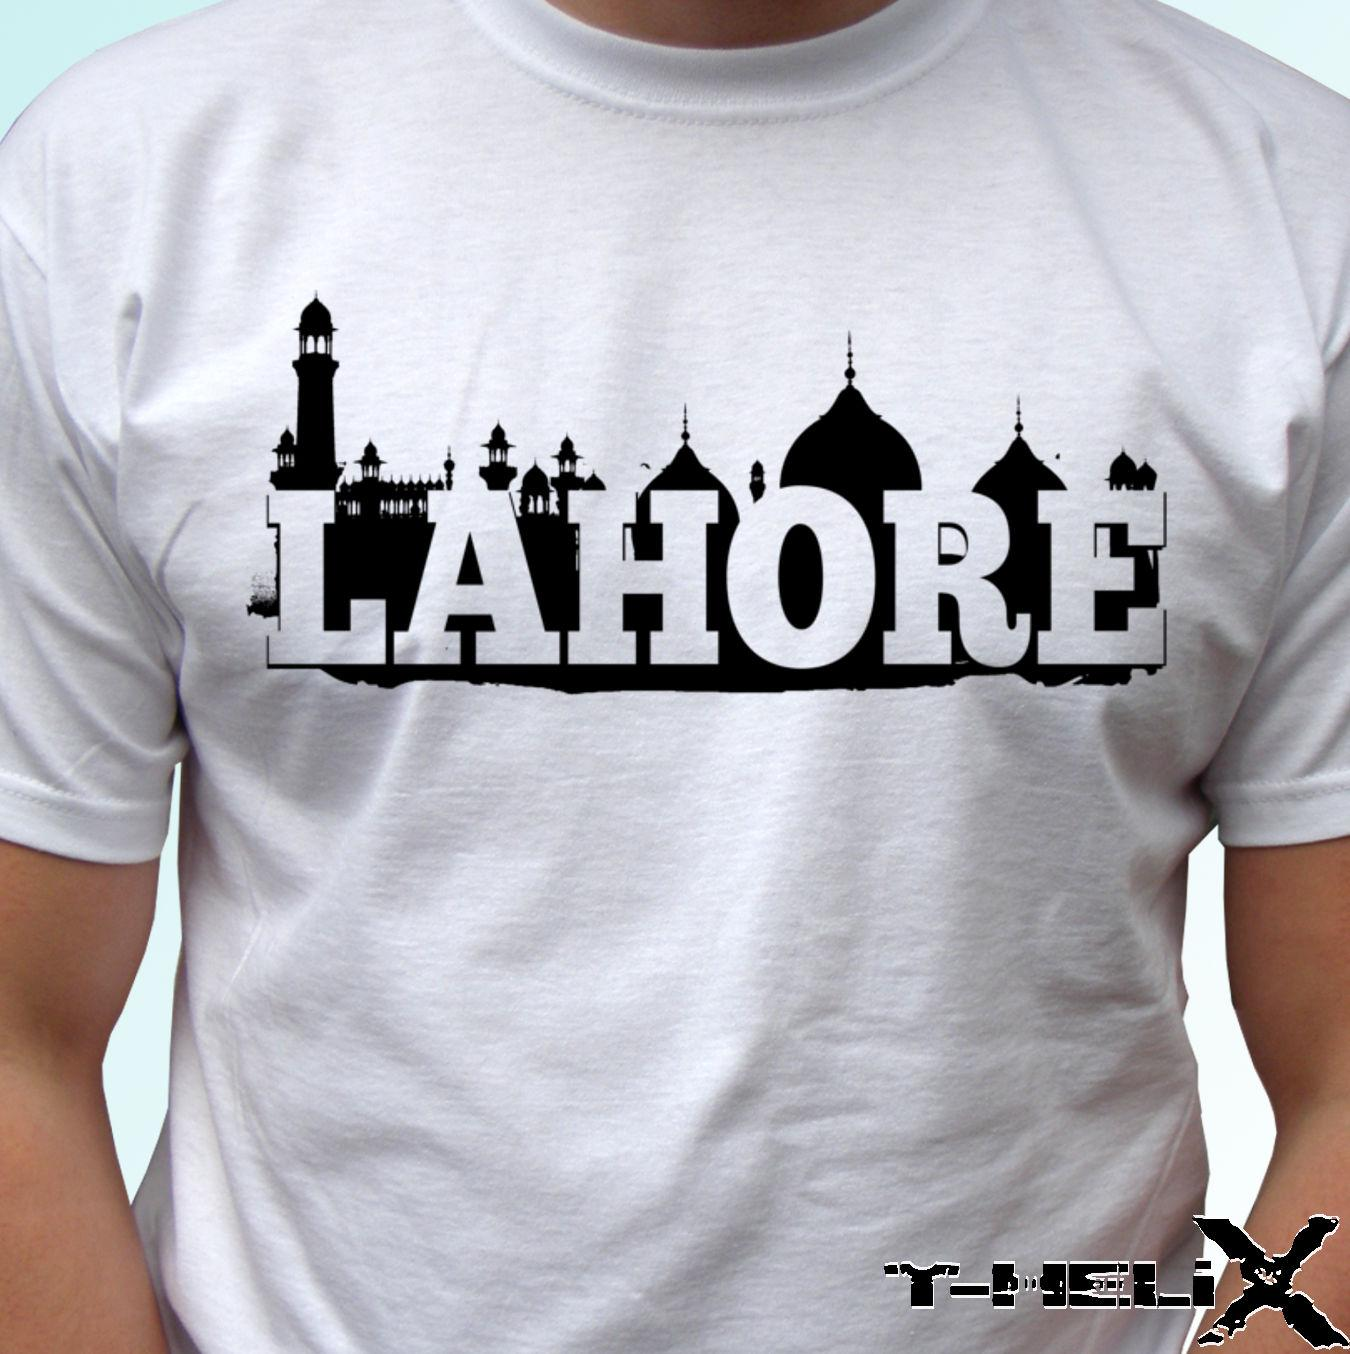 0d2a09a9 Lahore White T Shirt Top Flag Pakistan Country Design Mens Womens Kids Baby  Funny Unisex Casual Tshirt Daily Tee Shirts Coolest Shirt From  Funnybonetees, ...